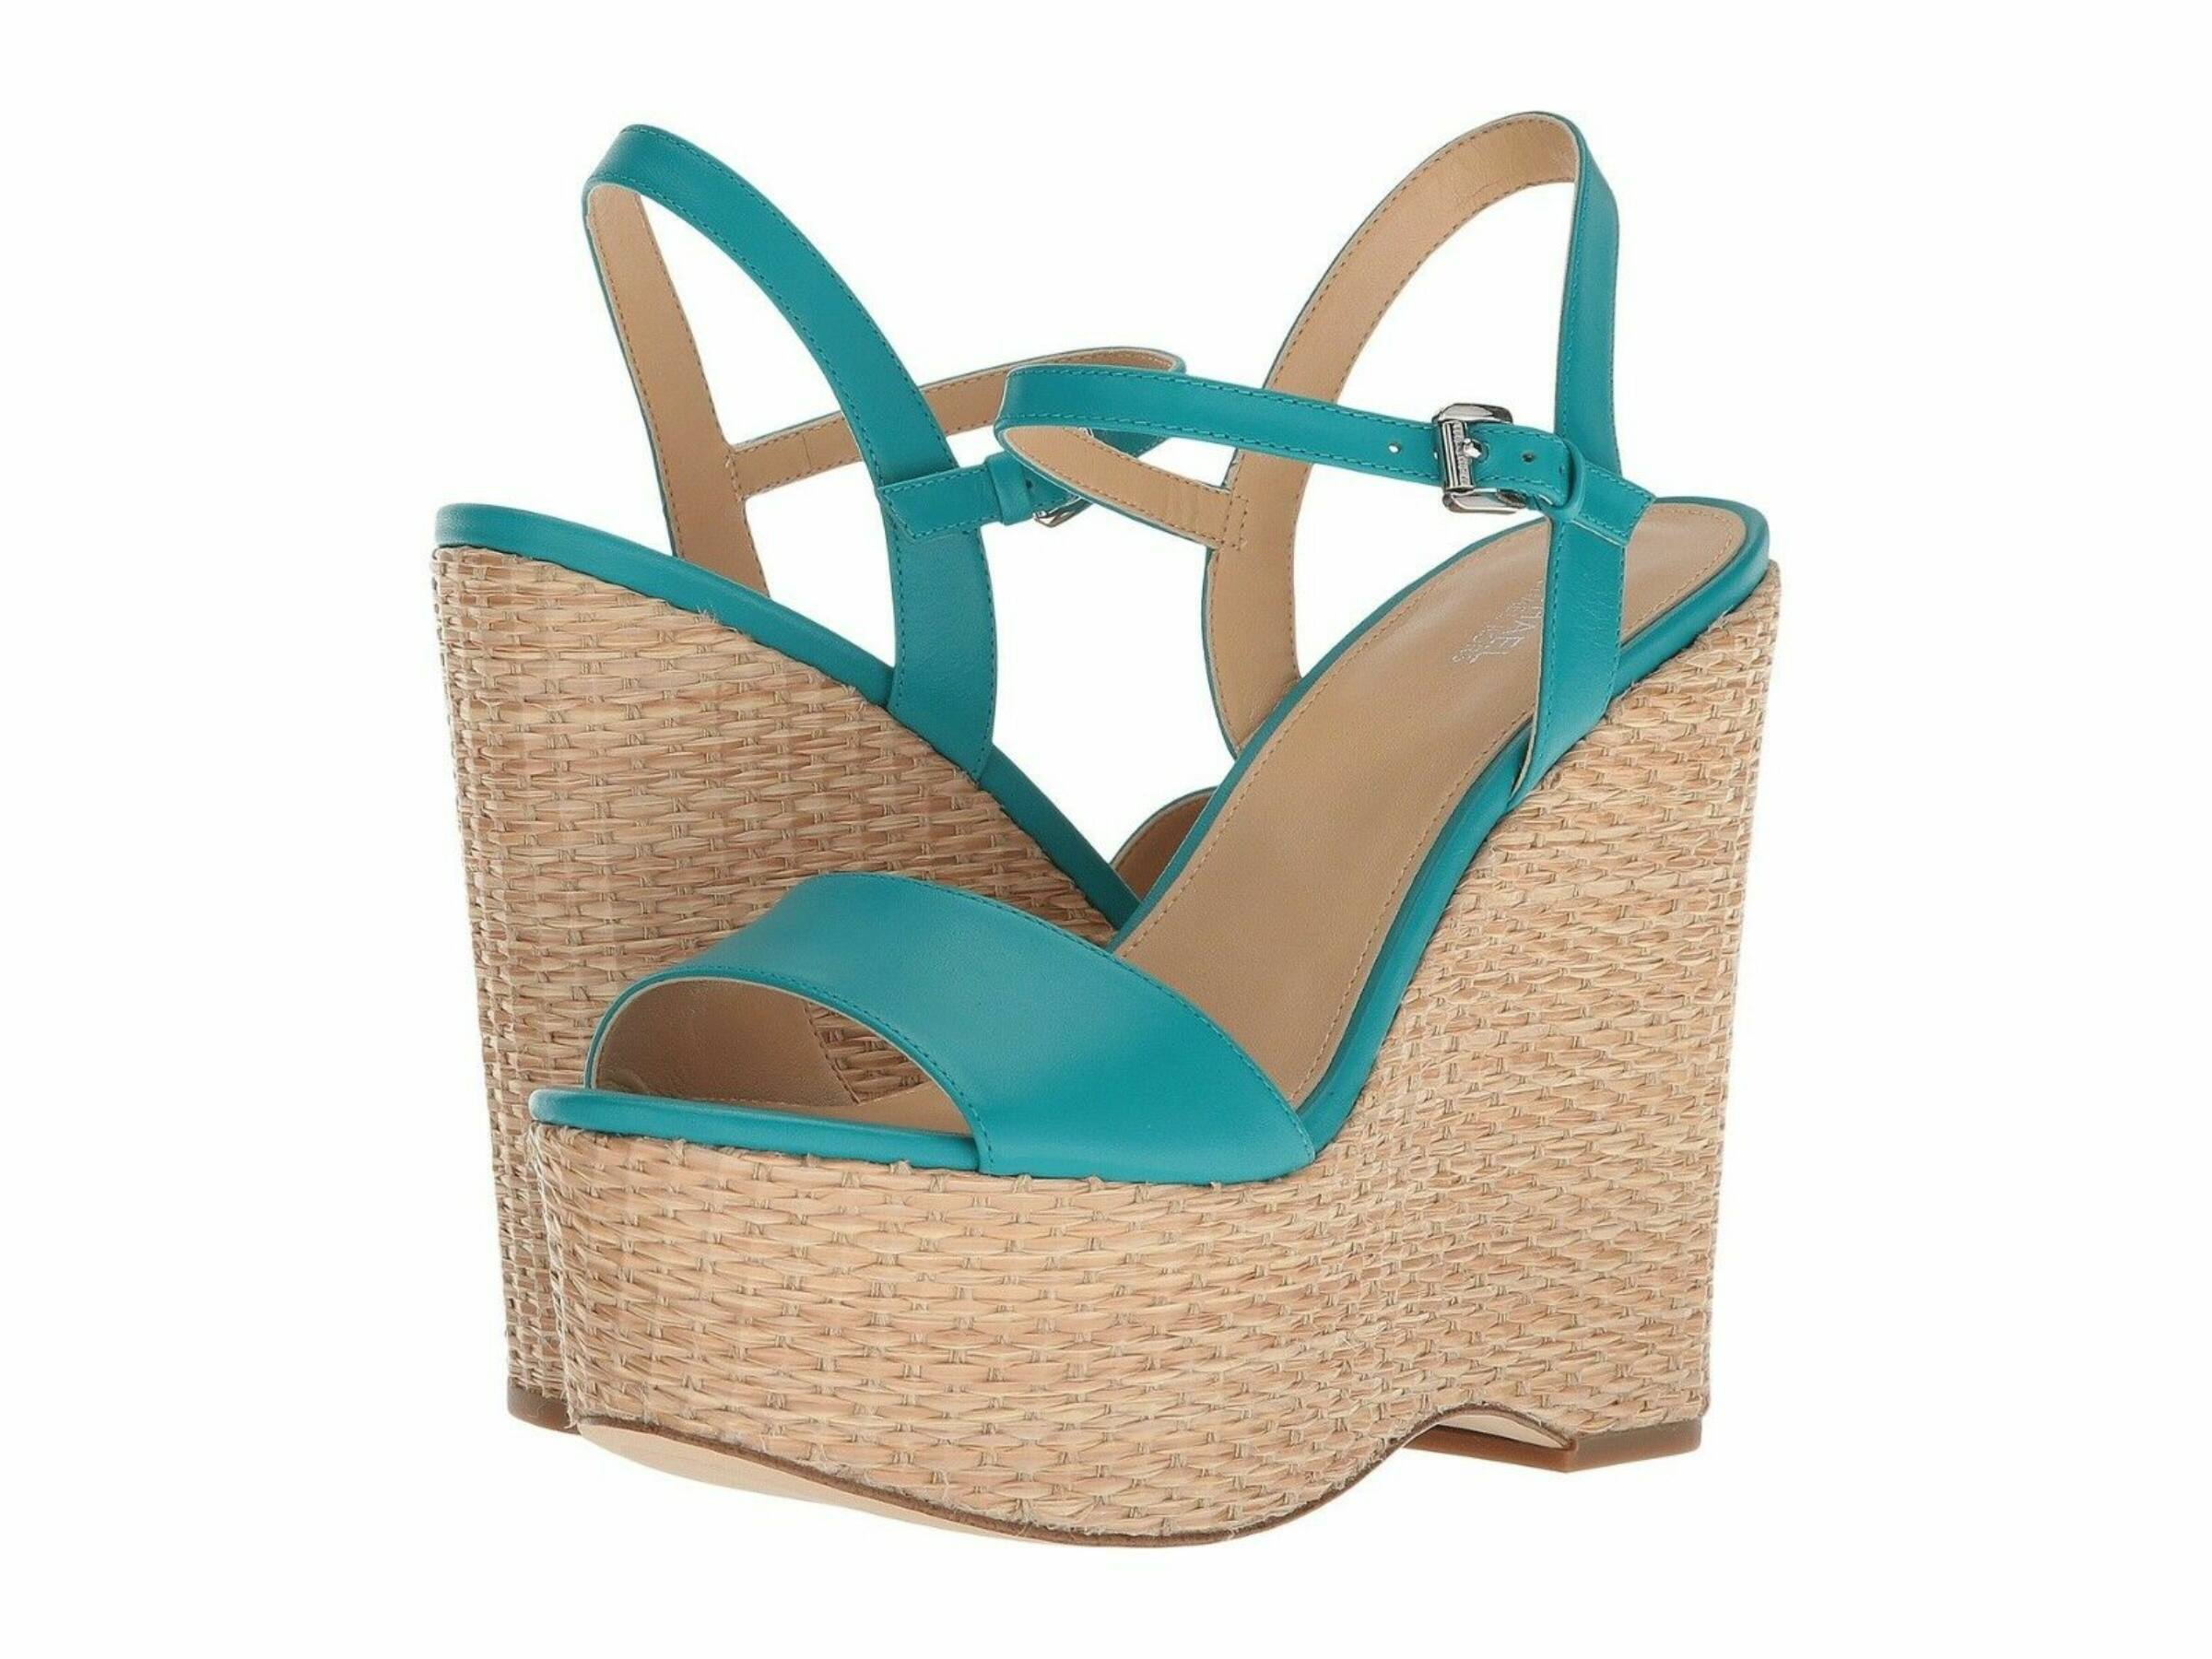 Michael Kors Fisher Tile Blue Leather Wedge (38.5)